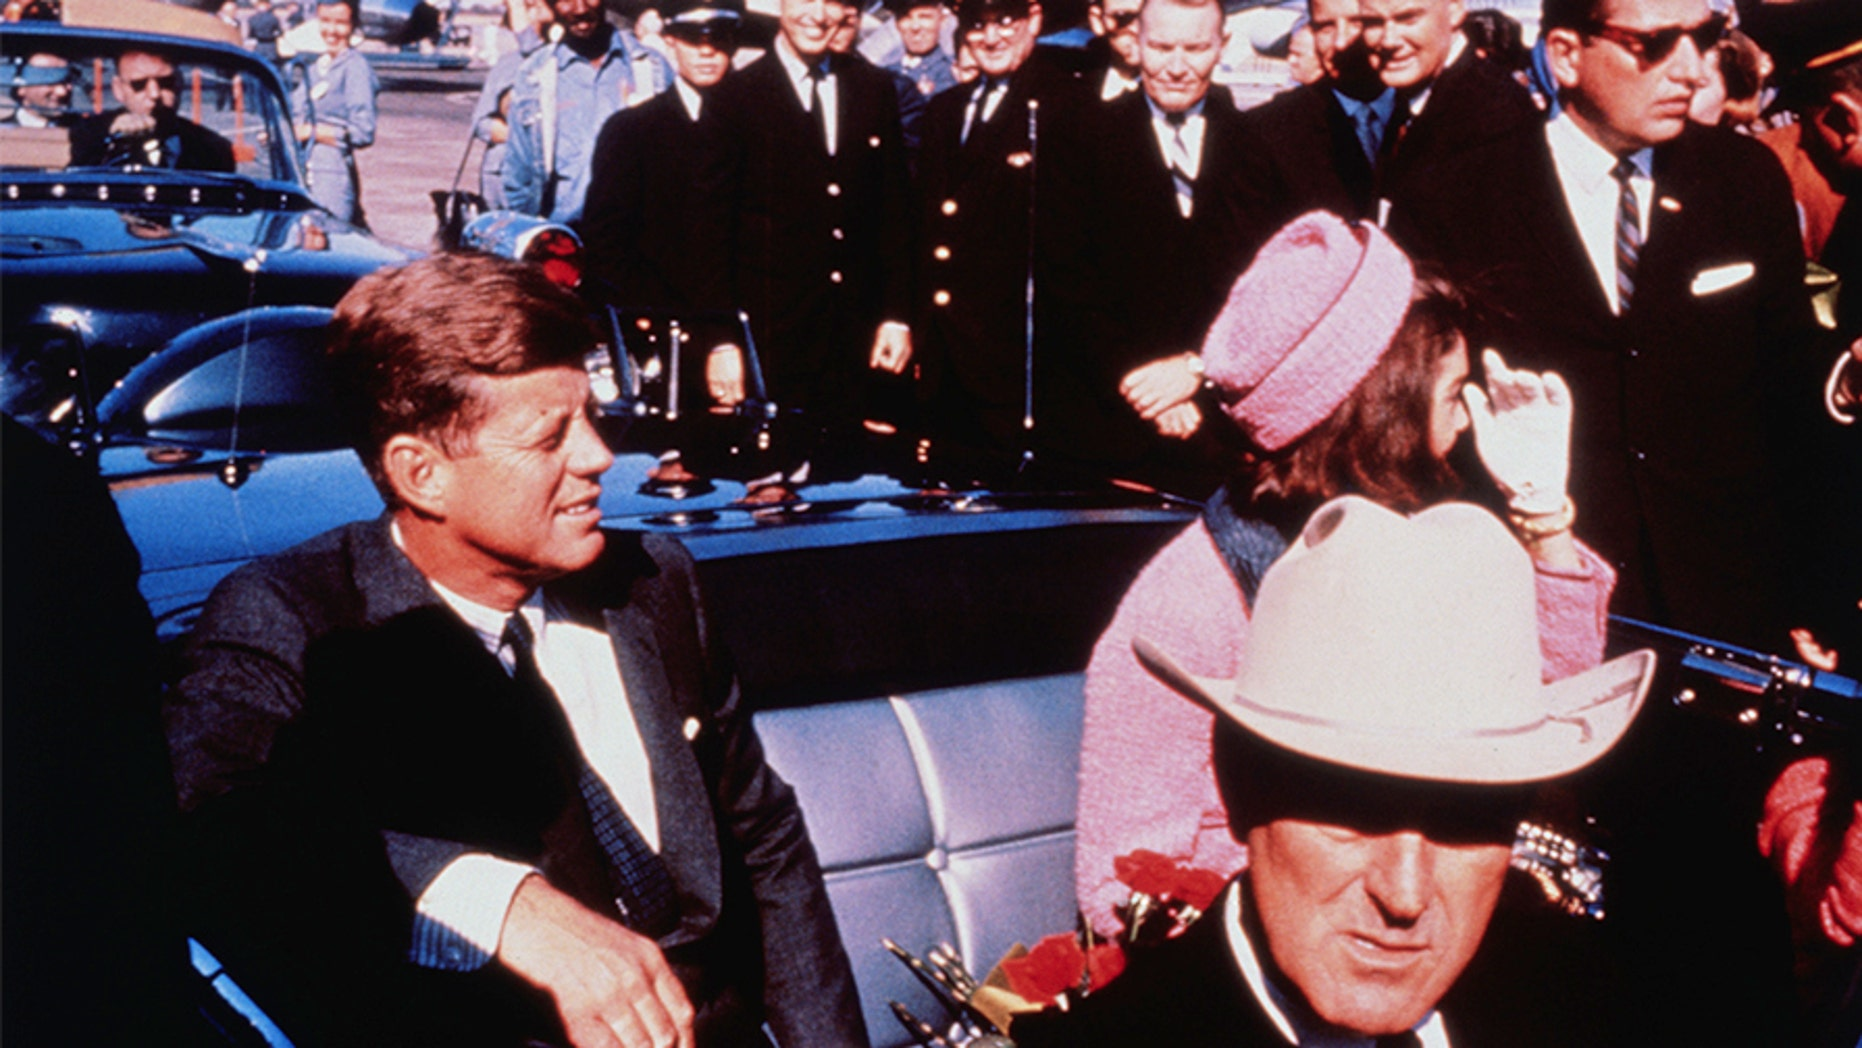 Texas Governor John Connally adjusts his tie (foreground) as President and Mrs. Kennedy, in a pink outfit, settled in rear seats, prepared for motorcade into the city from the airport, Nov. 22. After a few speaking stops, the President was assassinated in the same car.